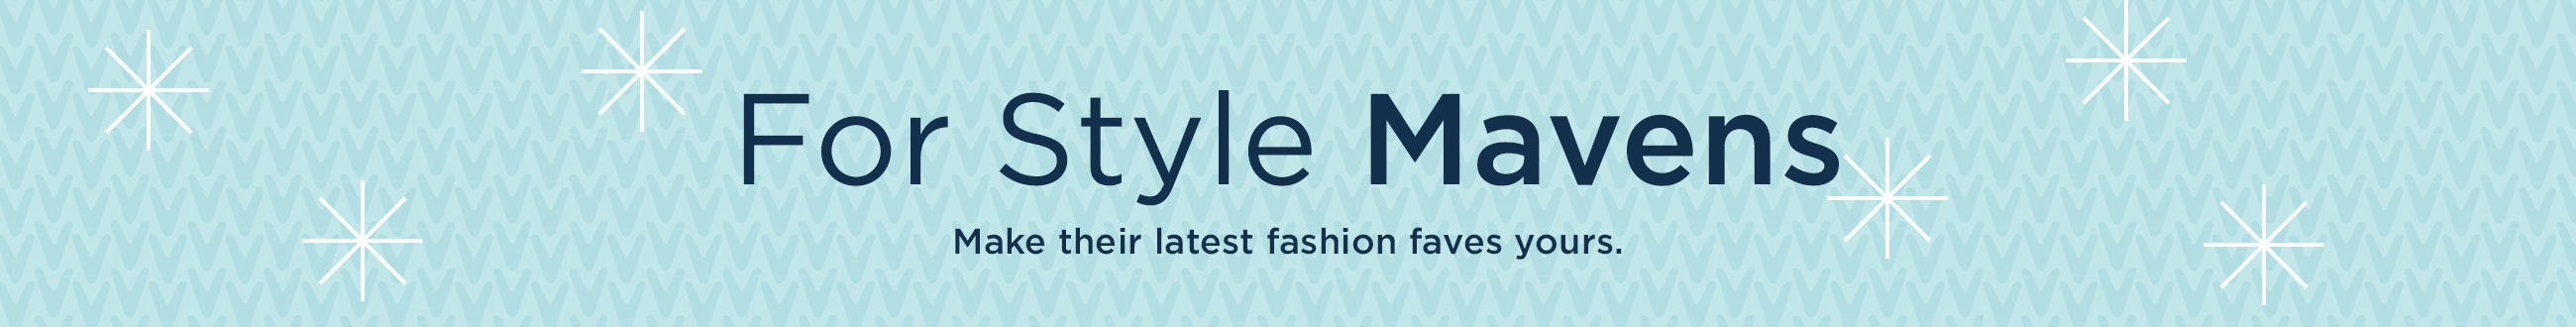 For Style Mavens  Make their latest fashion faves yours.